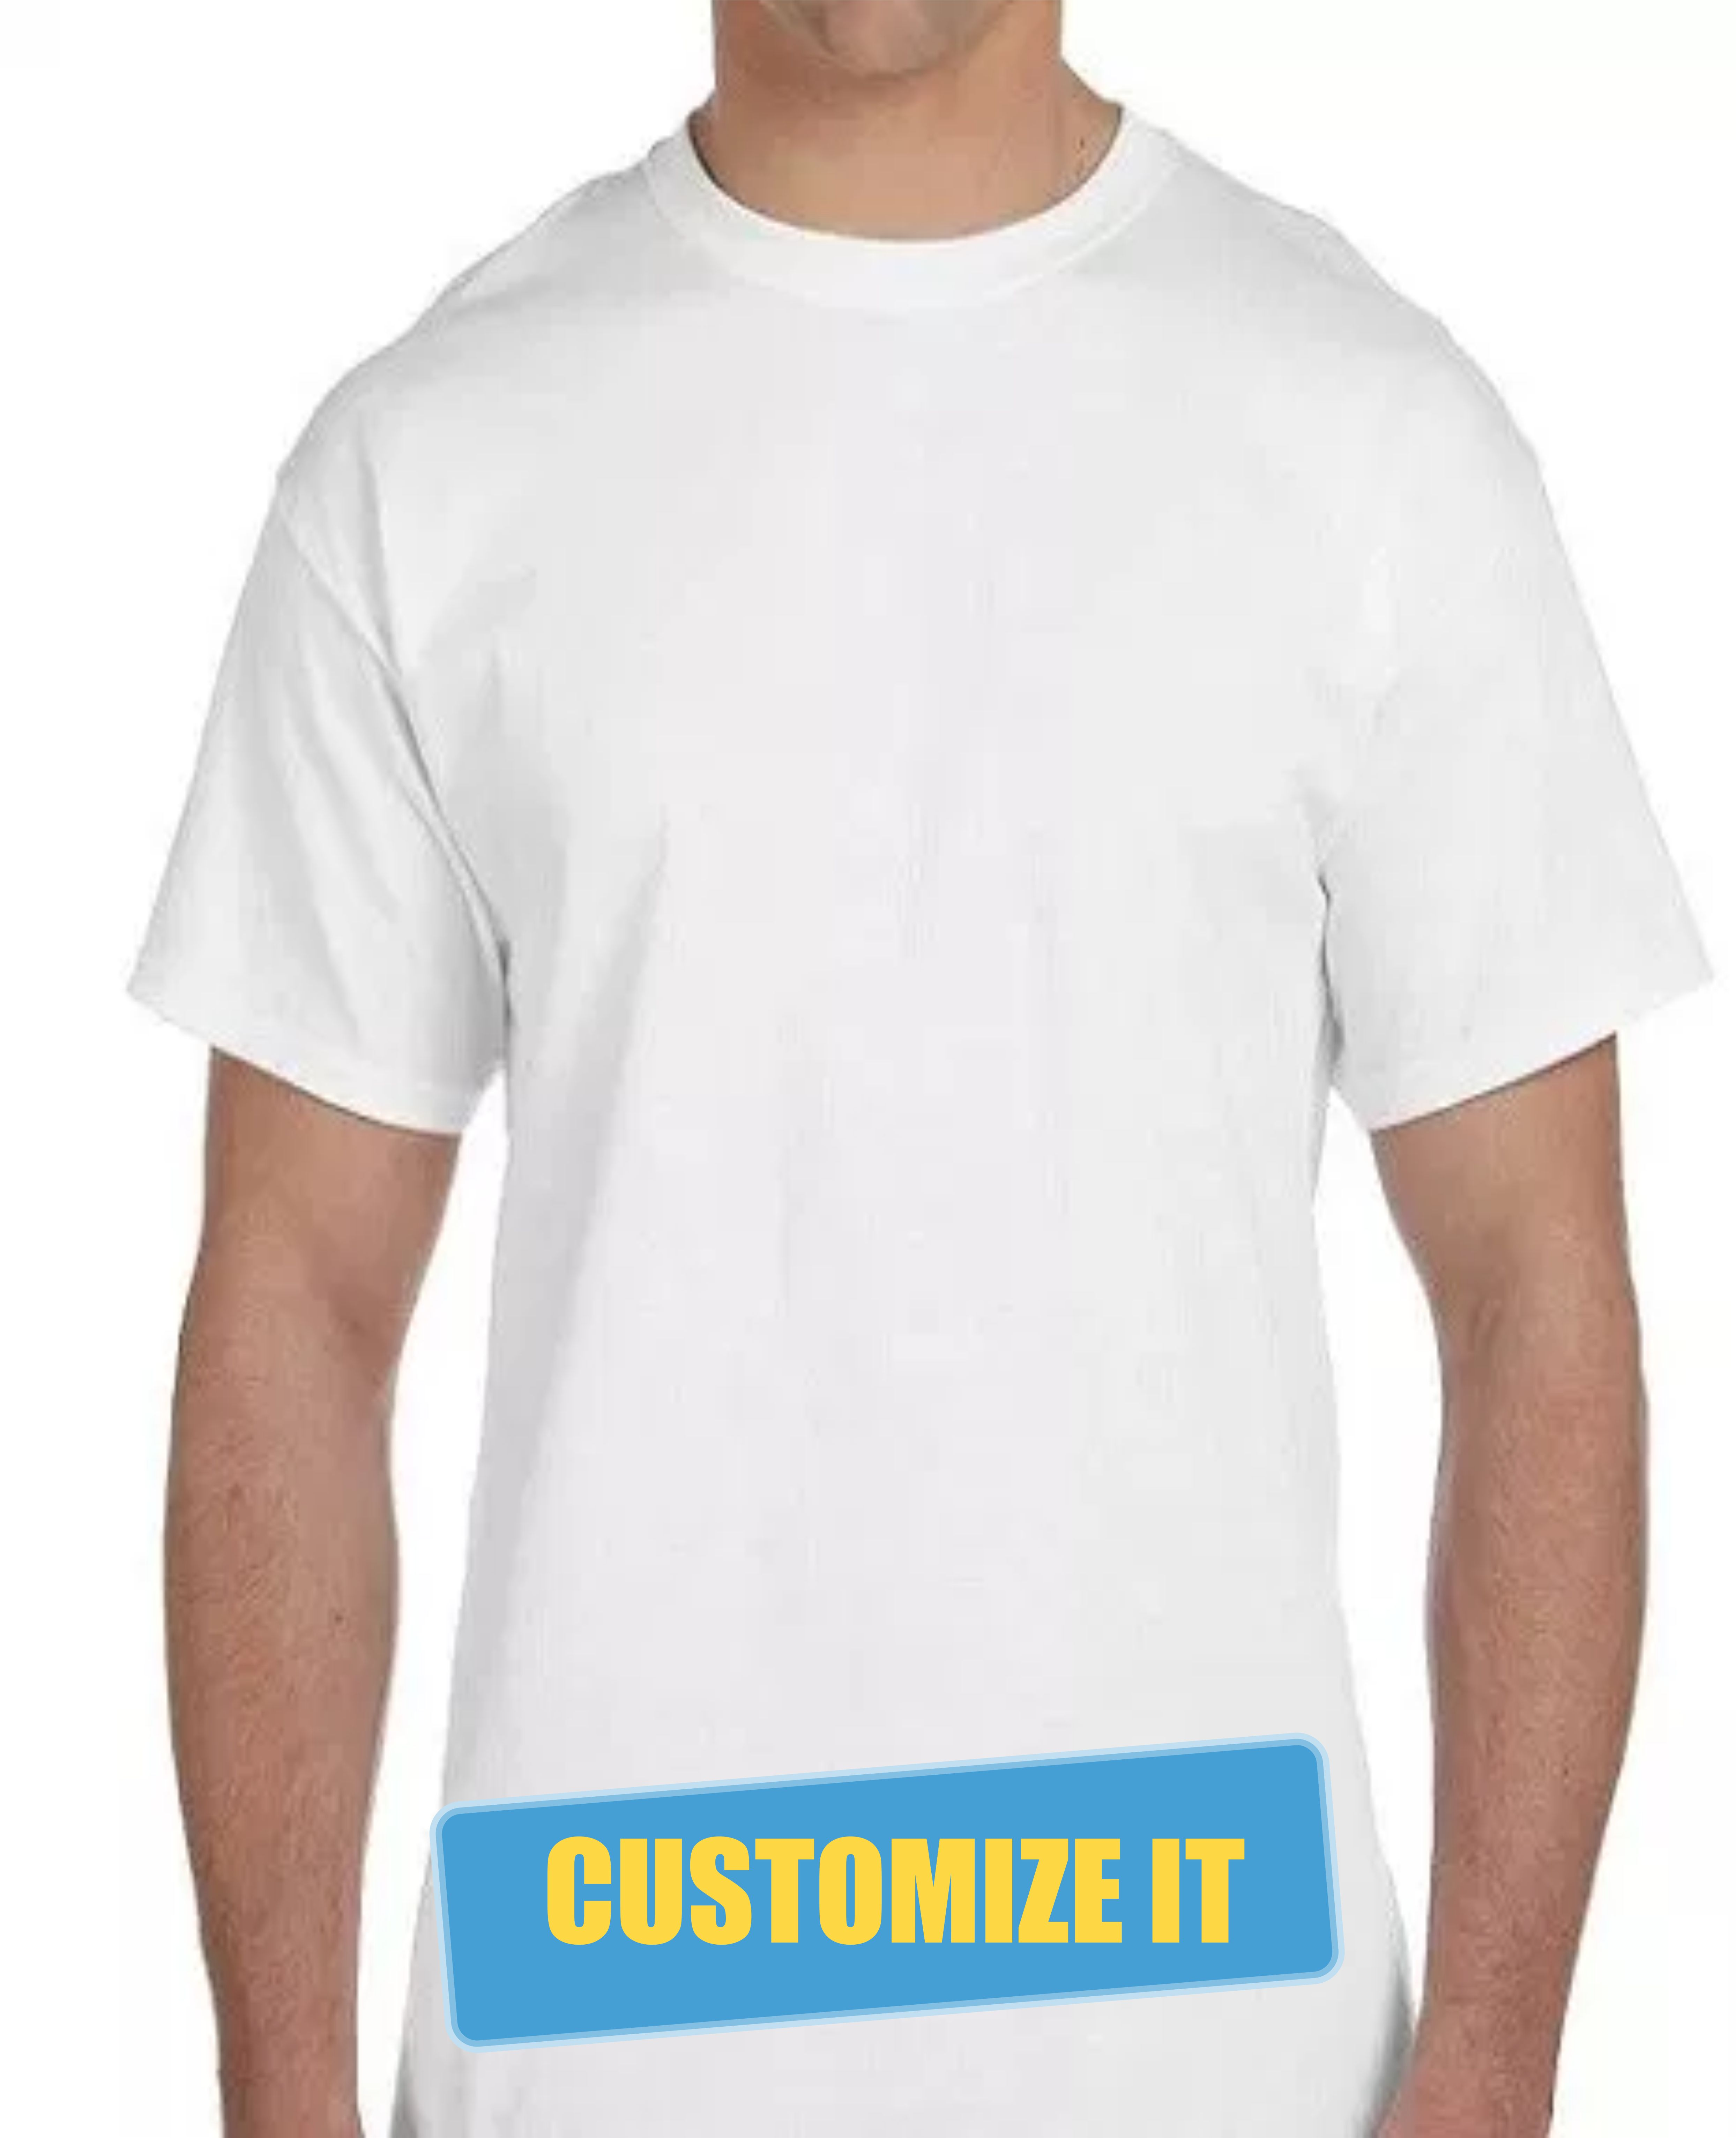 Best Custom T Shirts In Dallas Family Reunion Events Group Shirts